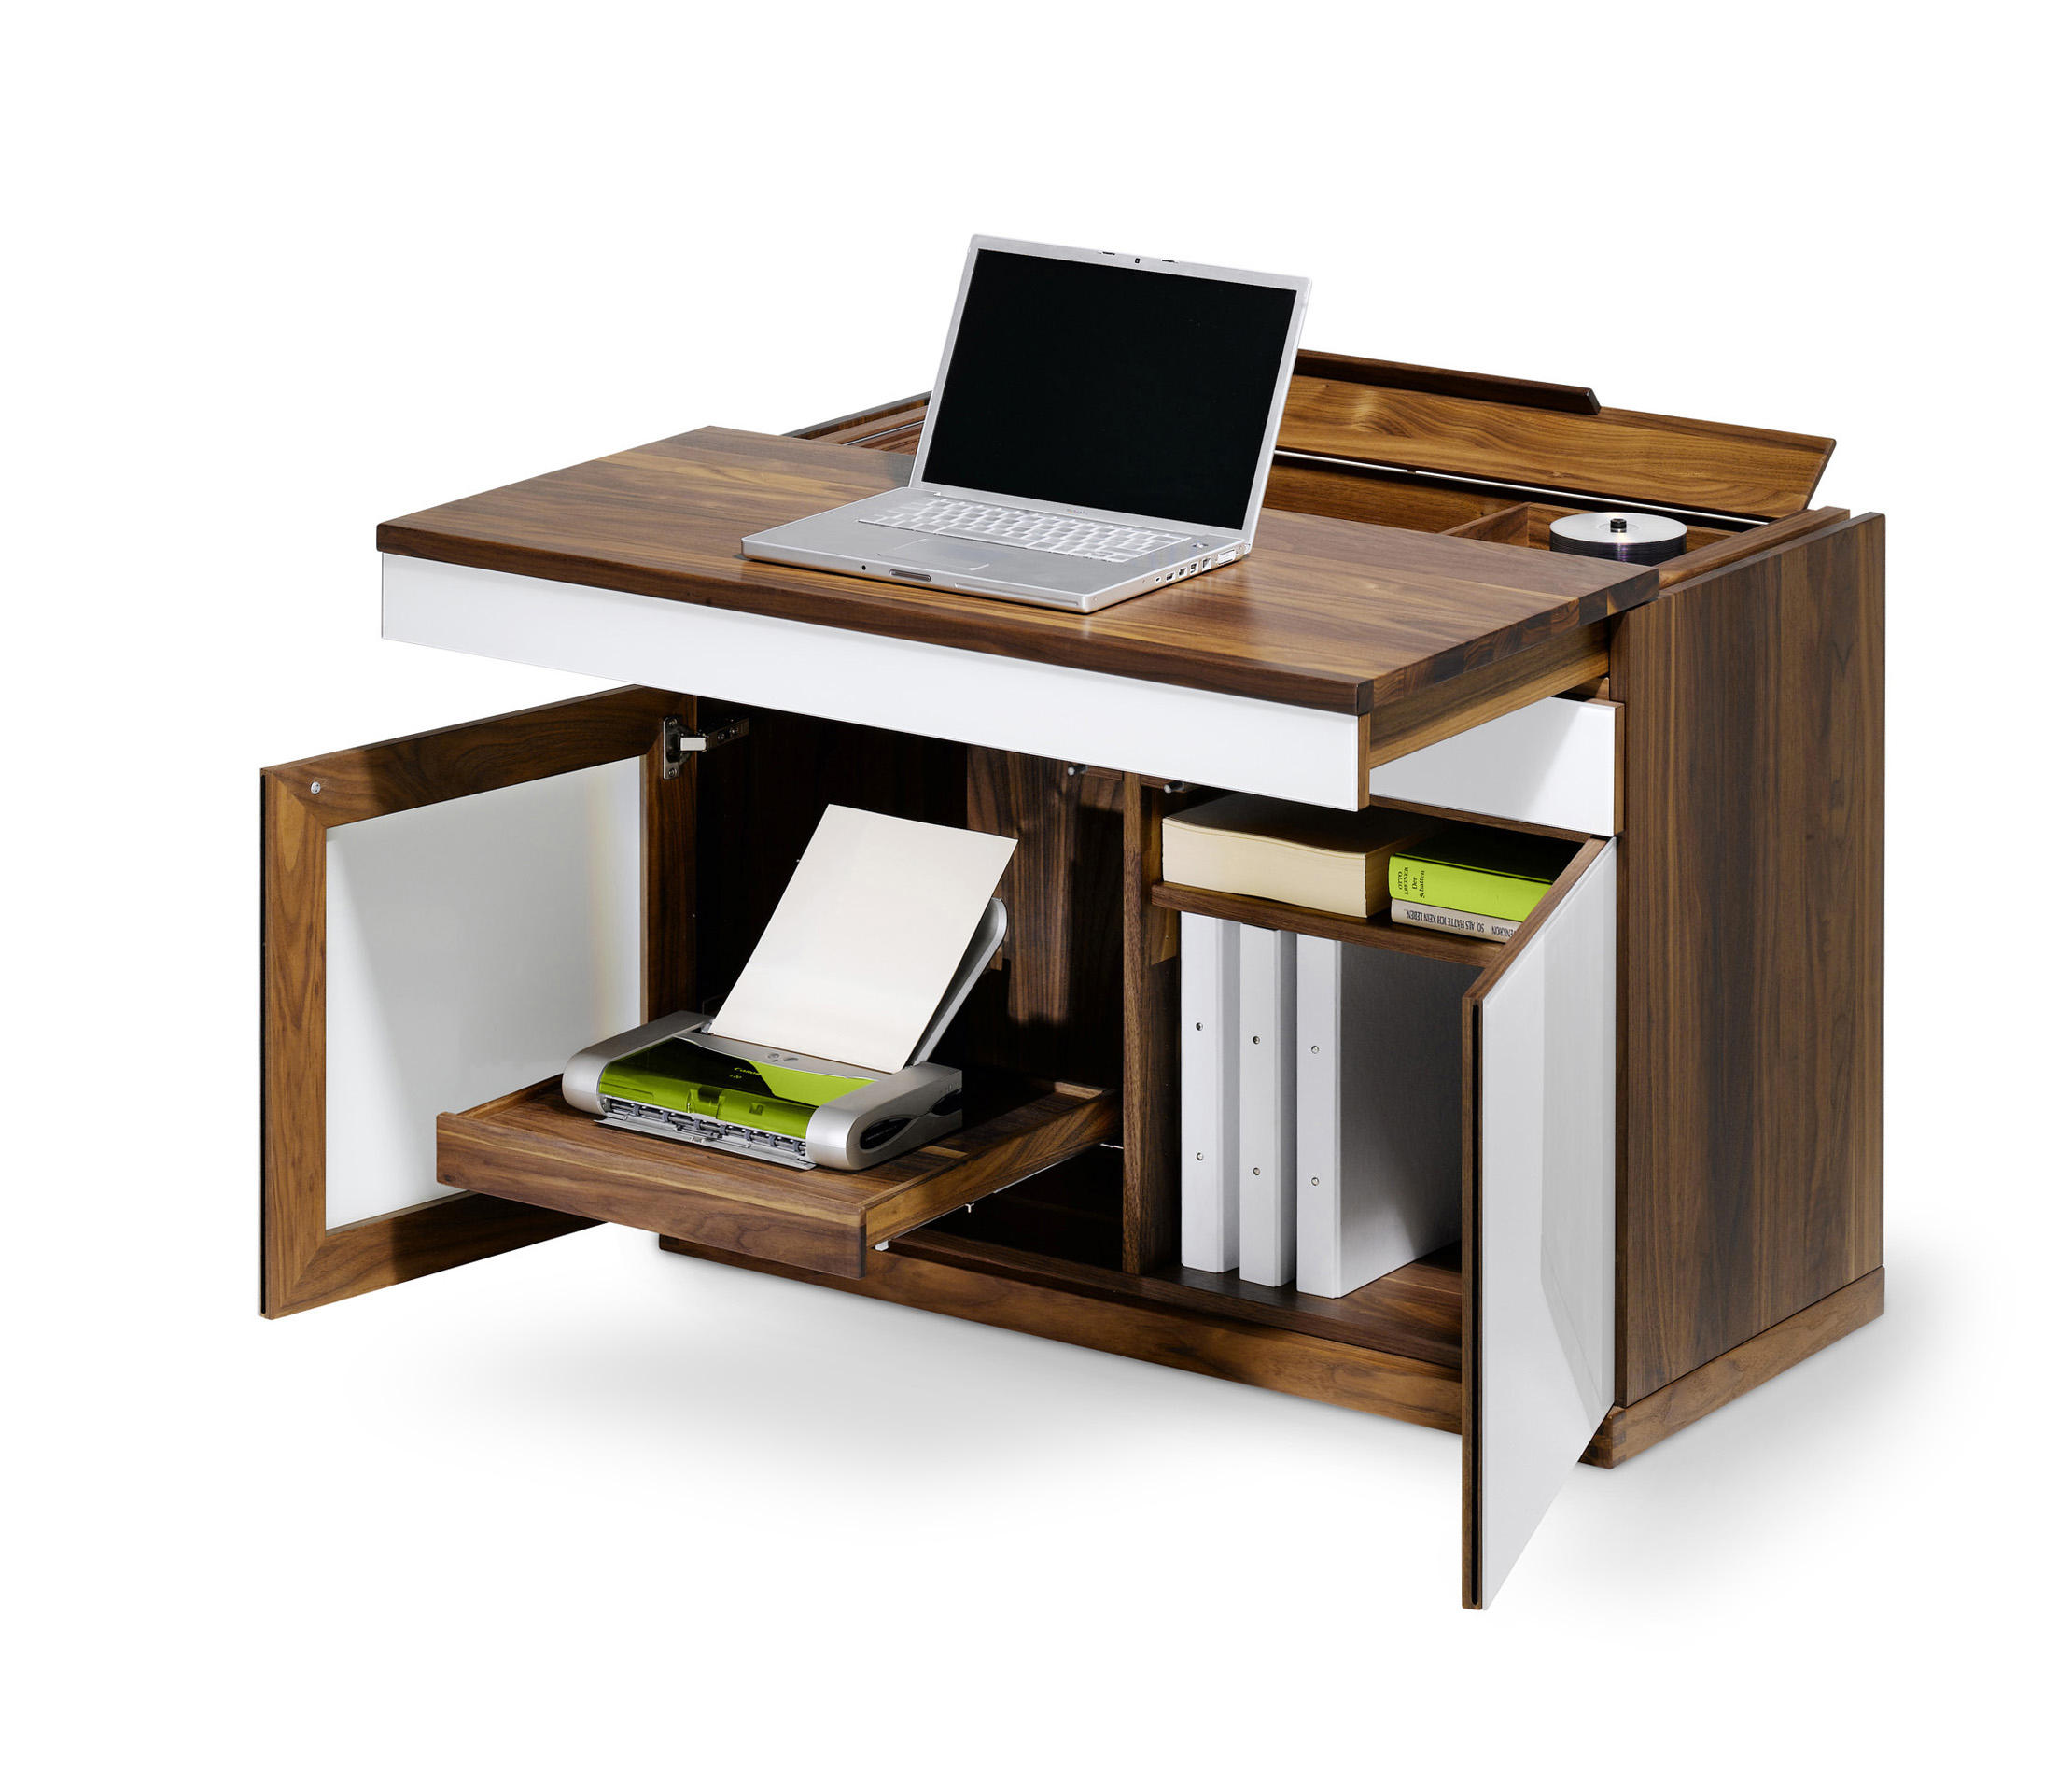 cubus writing desk desks from team 7 architonic. Black Bedroom Furniture Sets. Home Design Ideas